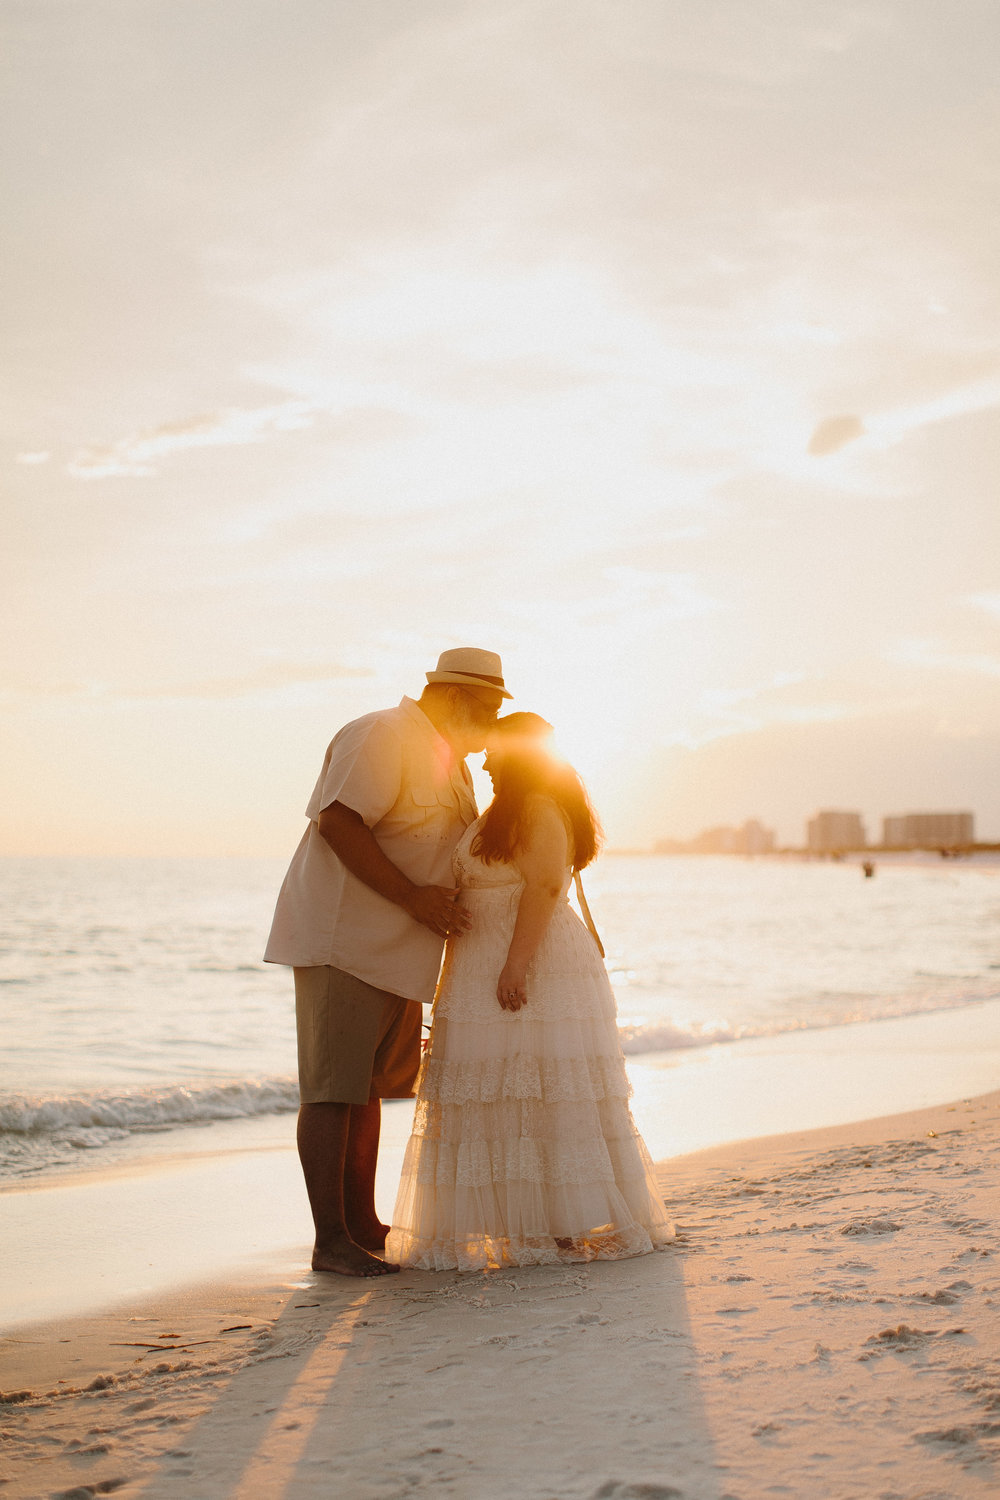 destin_sunset_beach_elopement_intimate_wedding_photographer_florida_documentary_1308.jpg